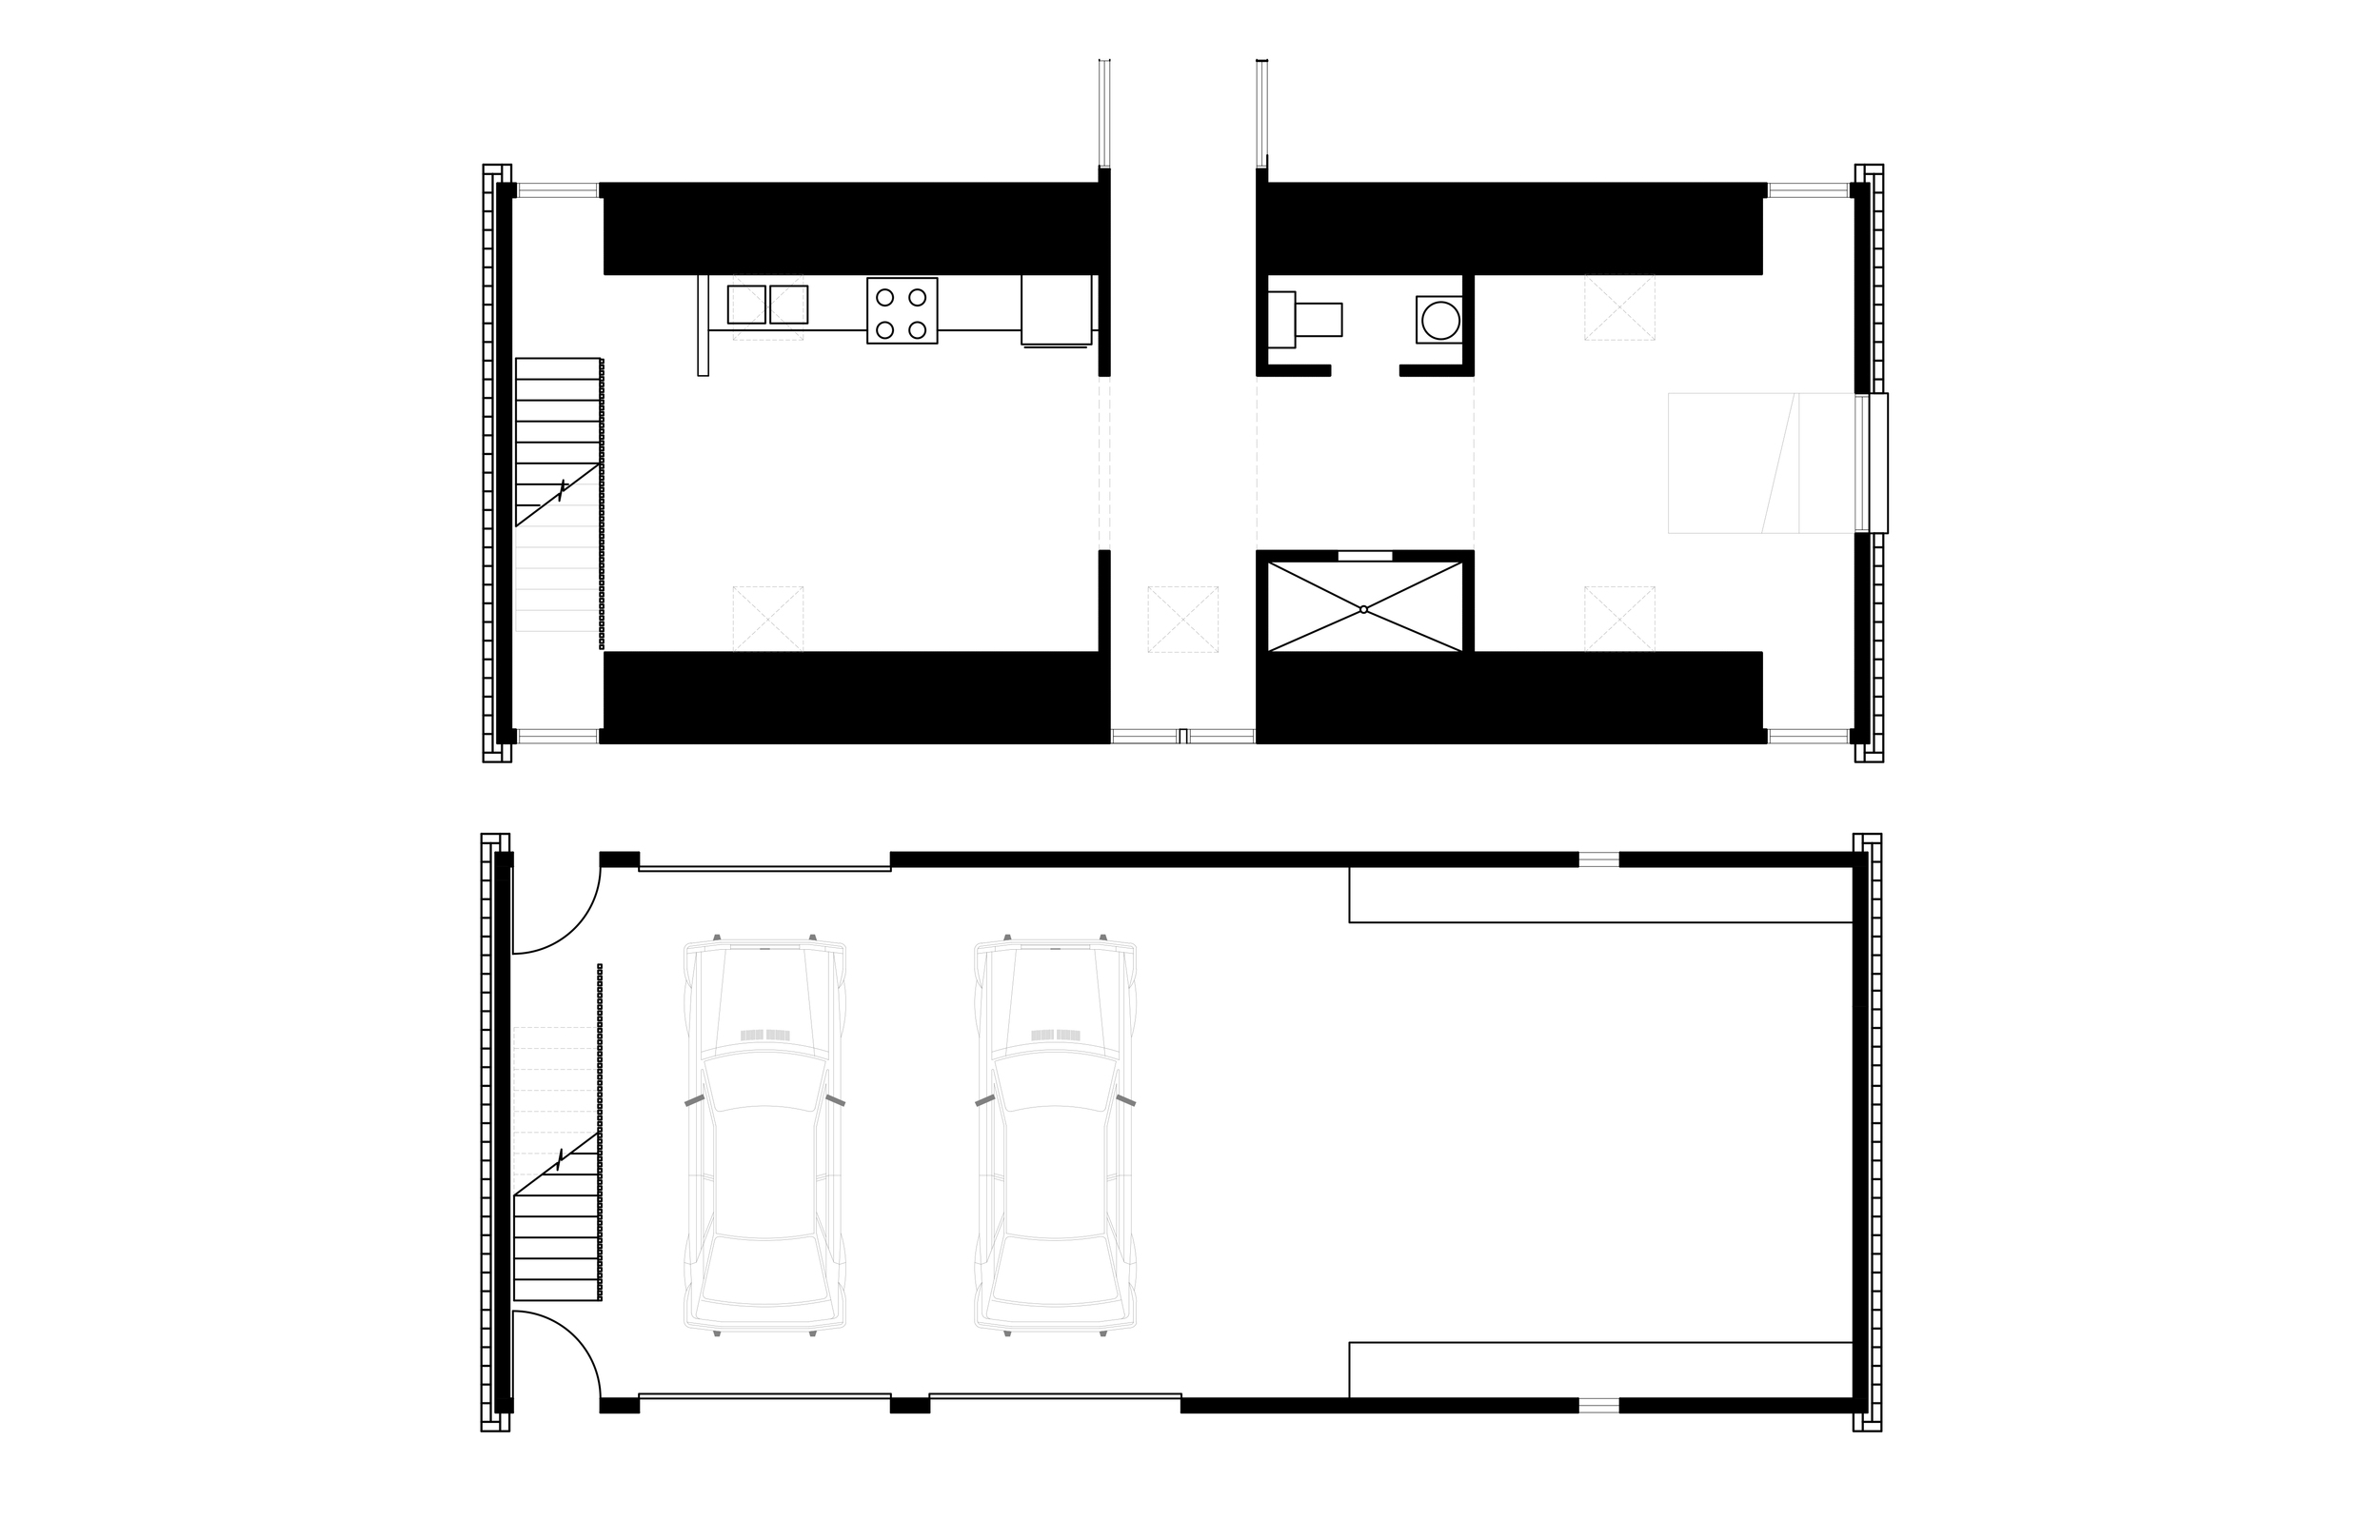 carriage house plans.jpg